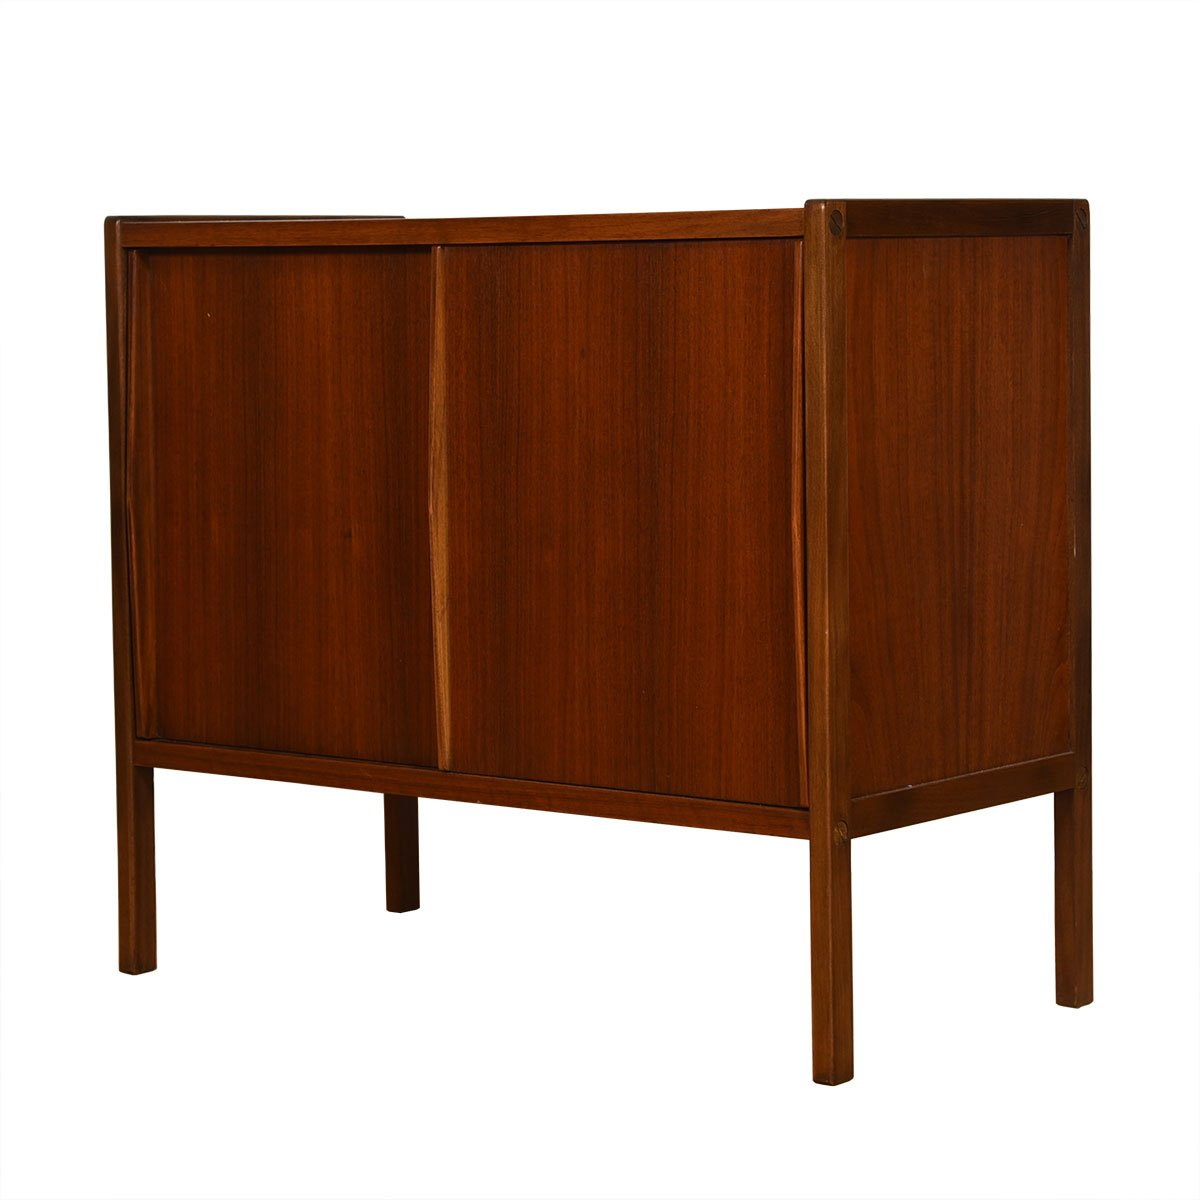 Compact Swedish Modern Cabinet in Walnut by Dux